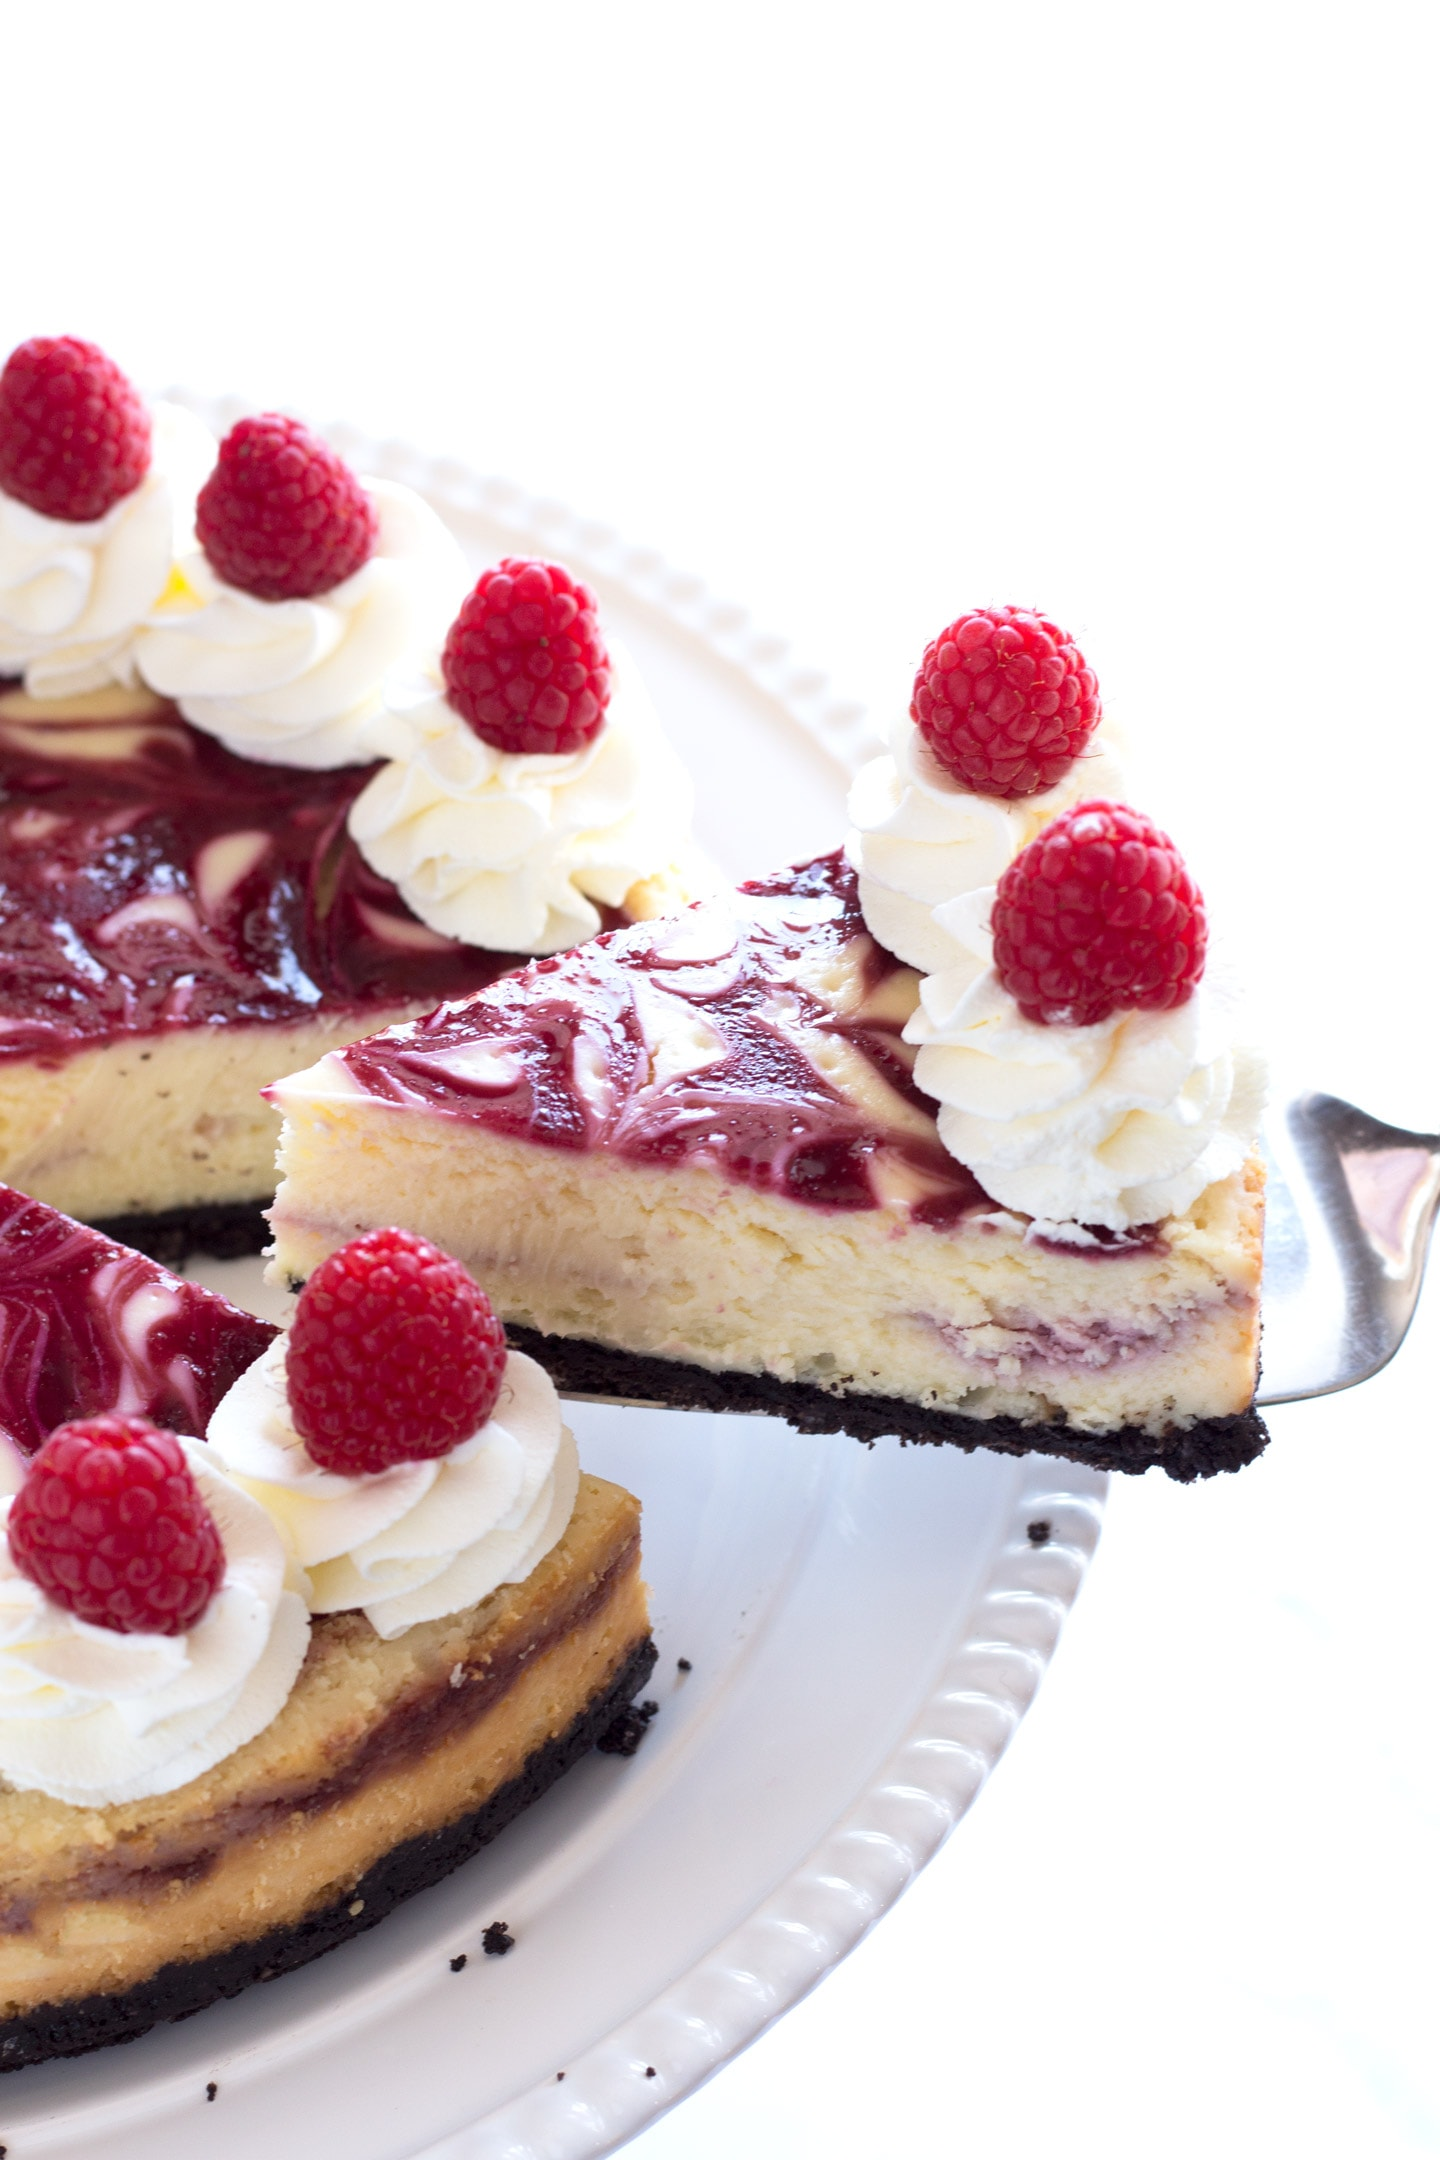 Removing slice of white chocolate raspberry cheesecake from white plate